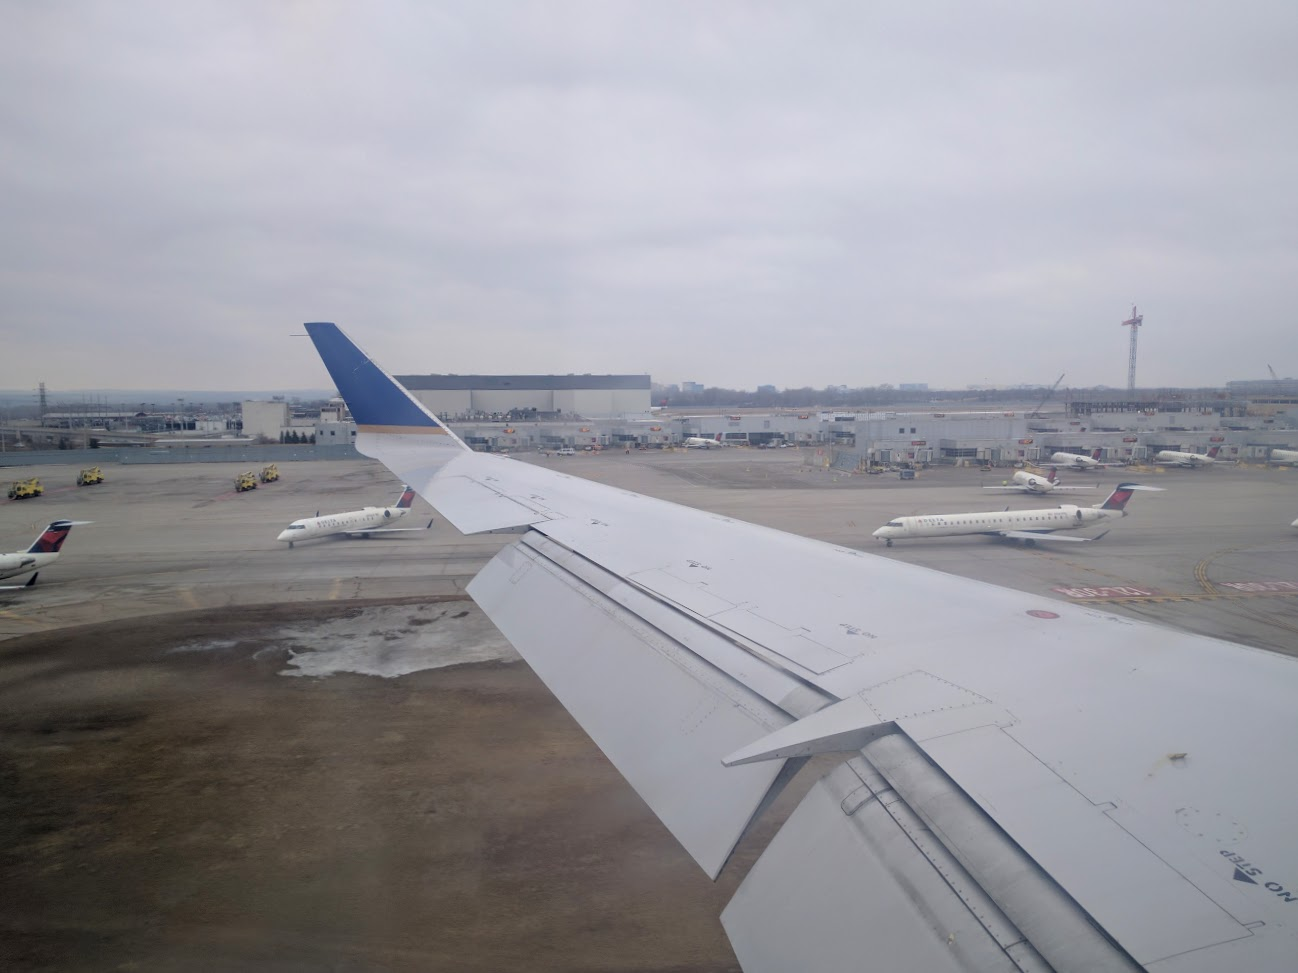 Review of United Express Mesa Airlines flight from